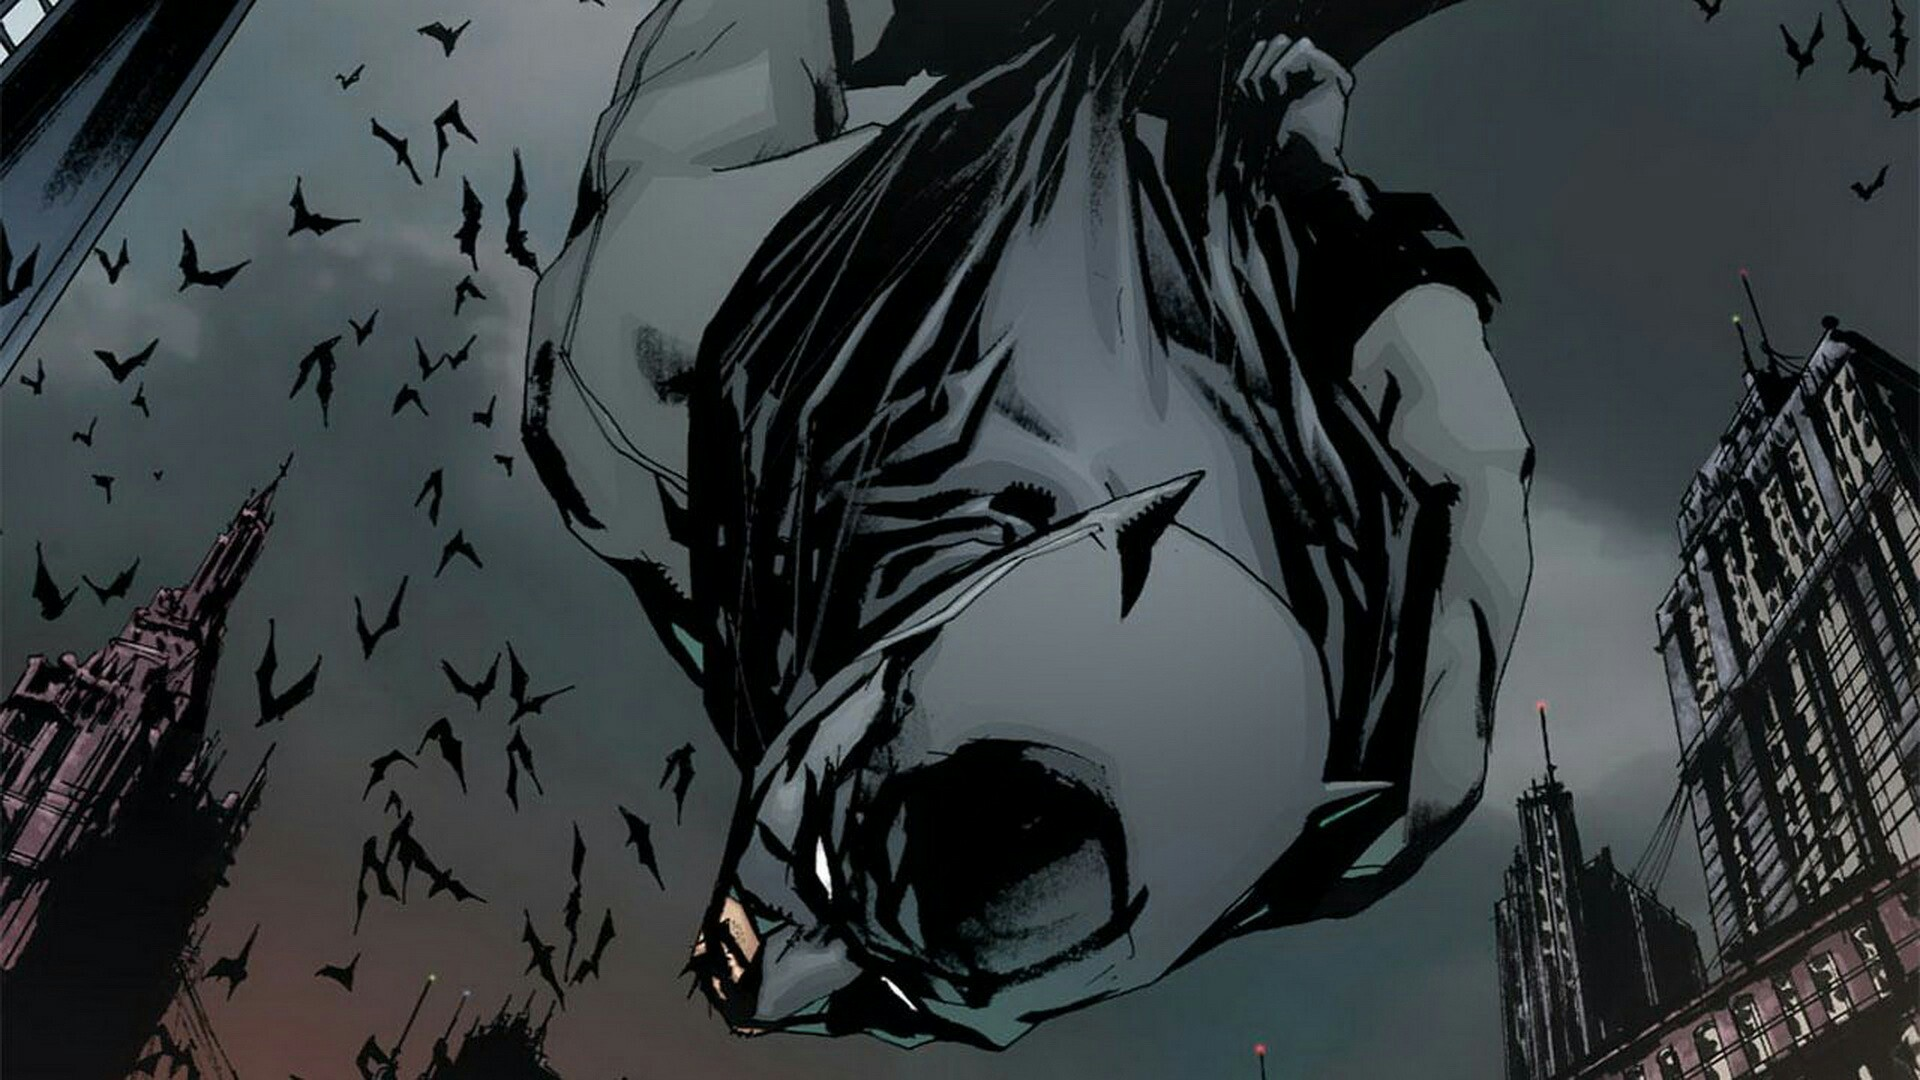 dcbafdecbabbfc-batman-comic-batman-dc-comics-wallpaper-wp3401055